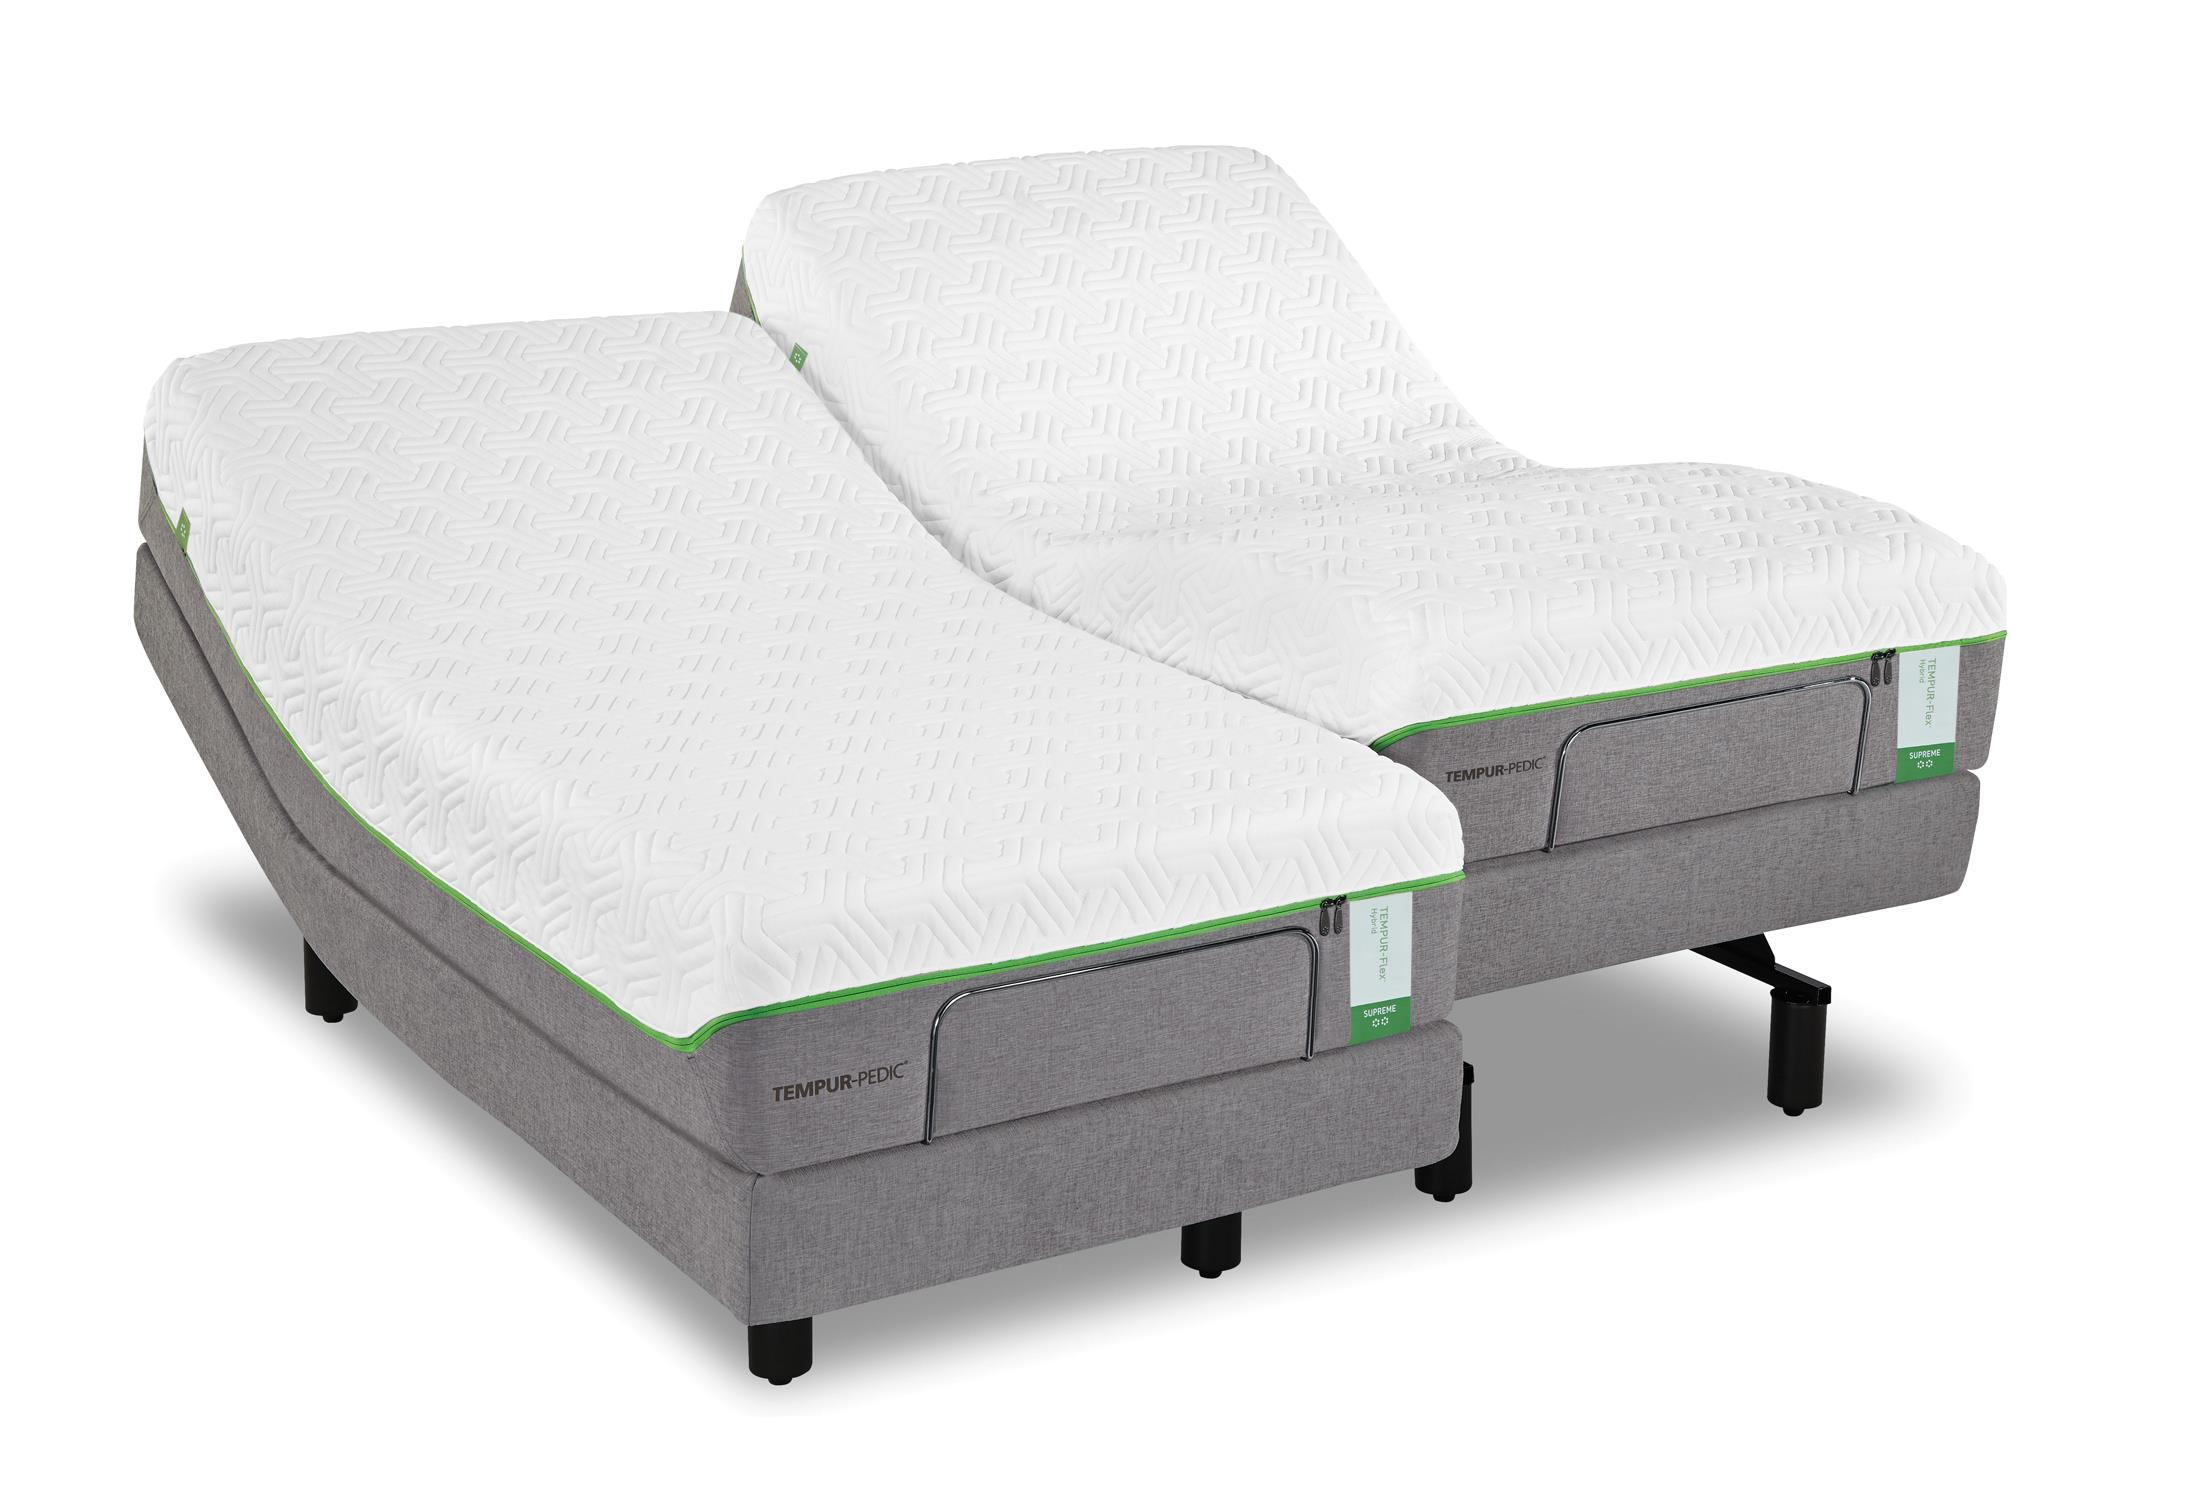 Tempur-Pedic® TEMPUR-Flex Supreme Cal King Medium Plush Adjustable Set - Item Number: 10116180+2x25289290